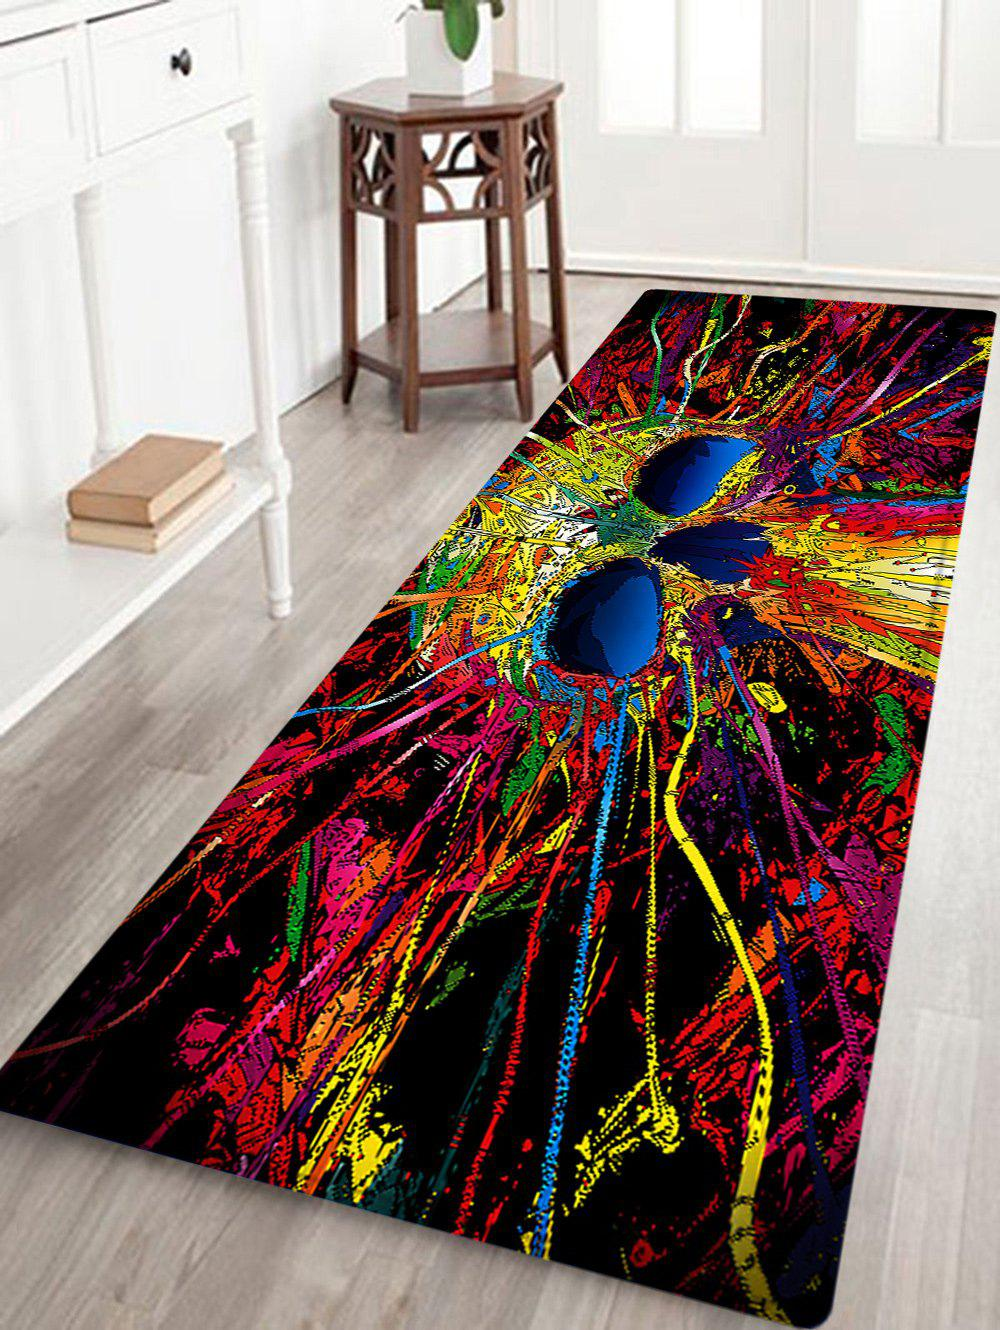 Skull Pattern Indoor Outdoor Area Rug - COLORMIX W24 INCH * L71 INCH